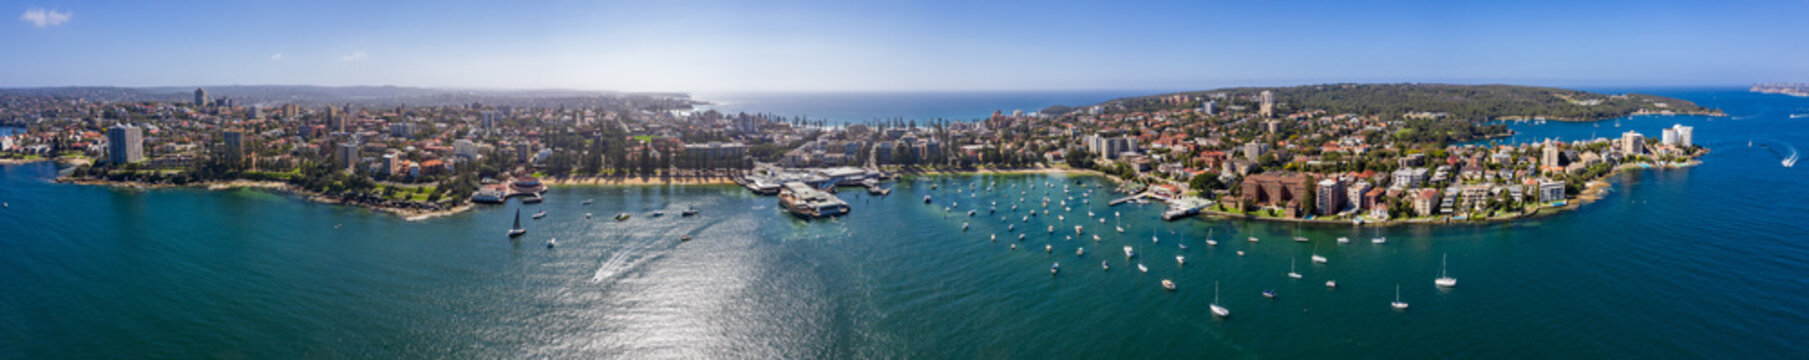 Aerial panoramic view of the Manly Wharf and harbour in Sydney, Australia